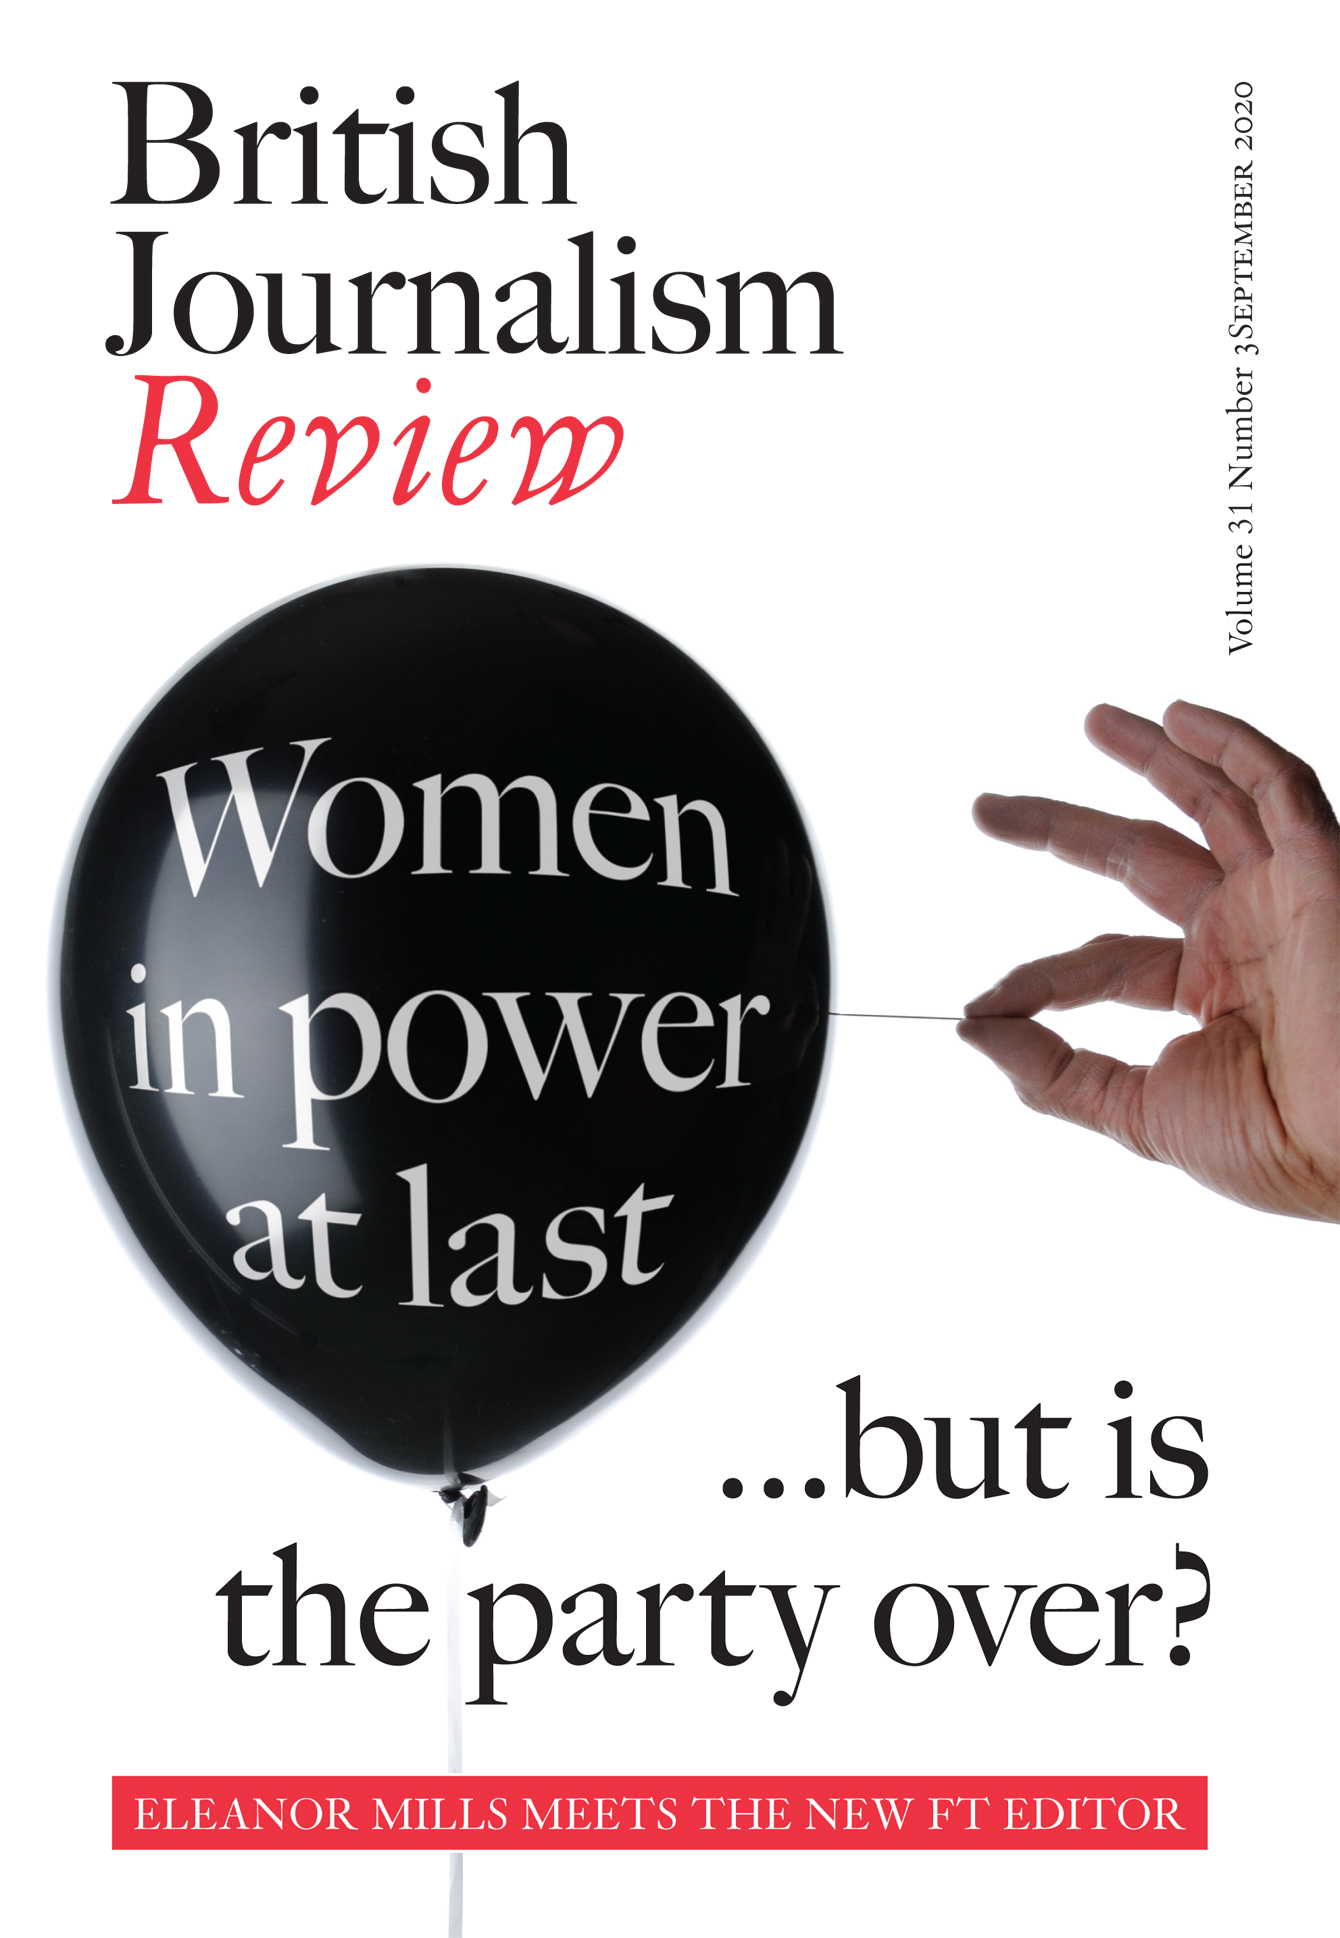 Testing time for women to take the crown : Eleanor Mills in the British Journalism Review